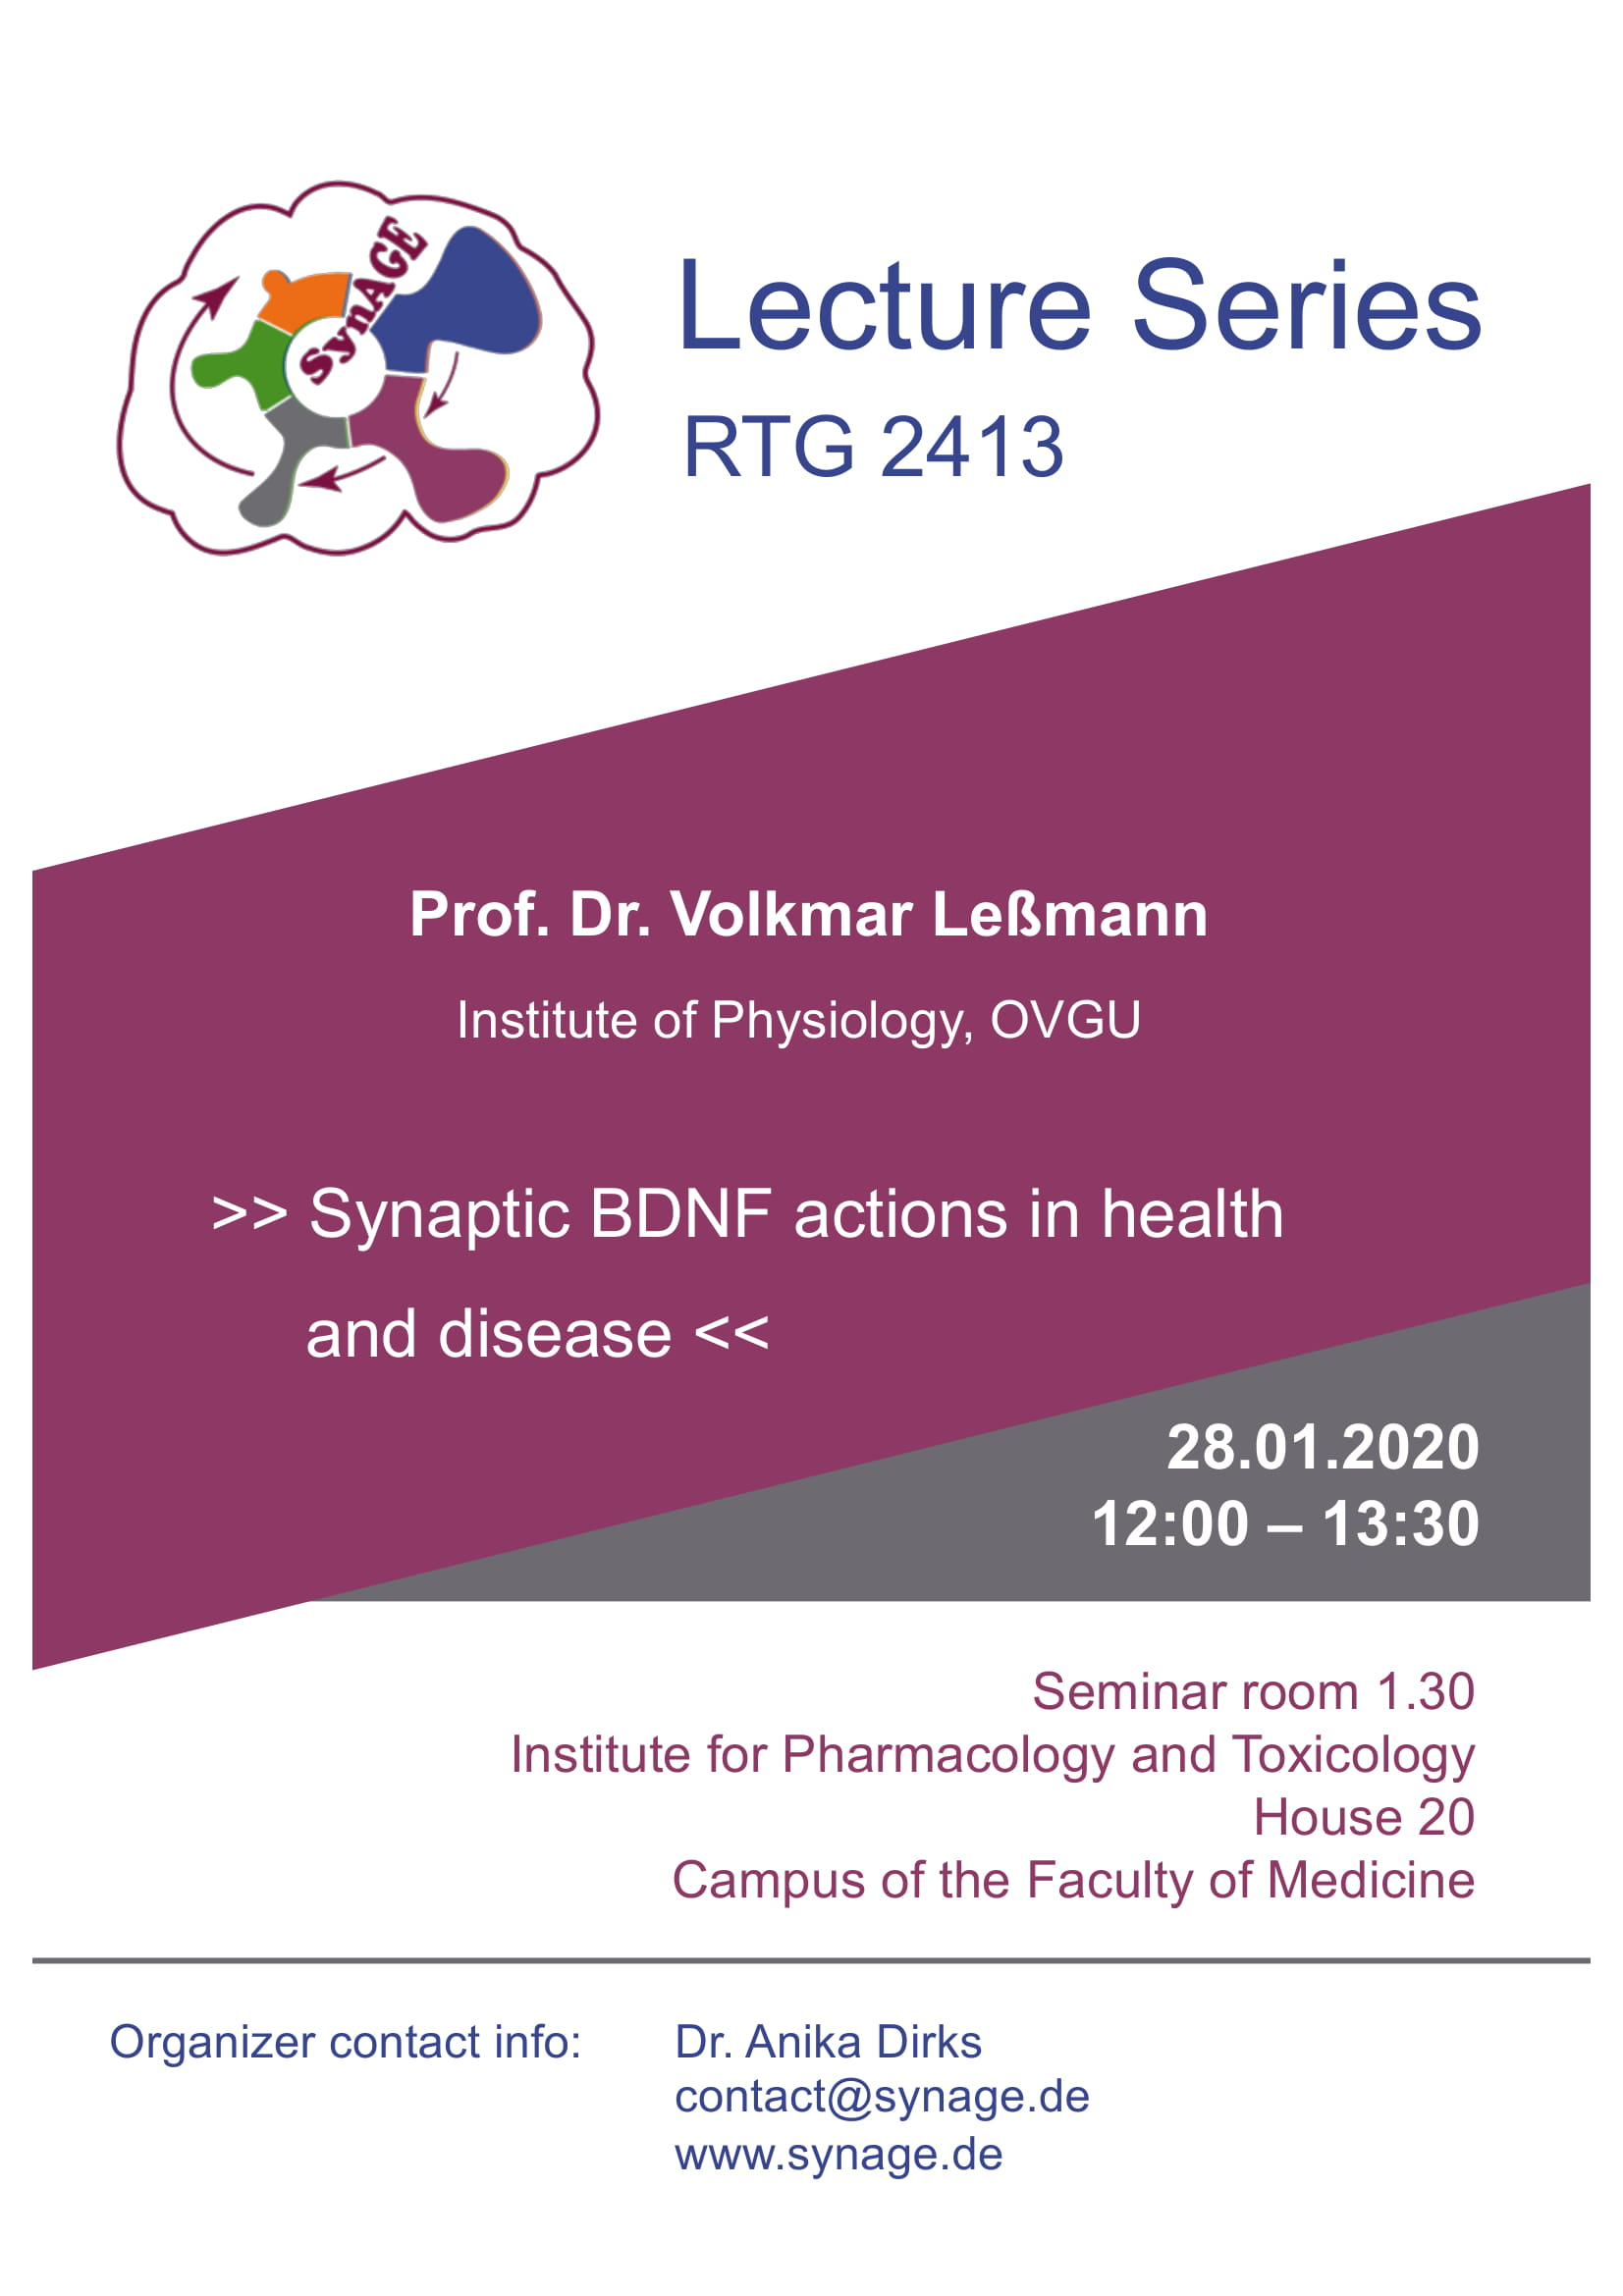 RTG 2413 SynAGE Lecture: Synaptic BDNF actions in health and disease @ Institute of Pharmacology and Toxicology, House 20, Seminarroom 1.30